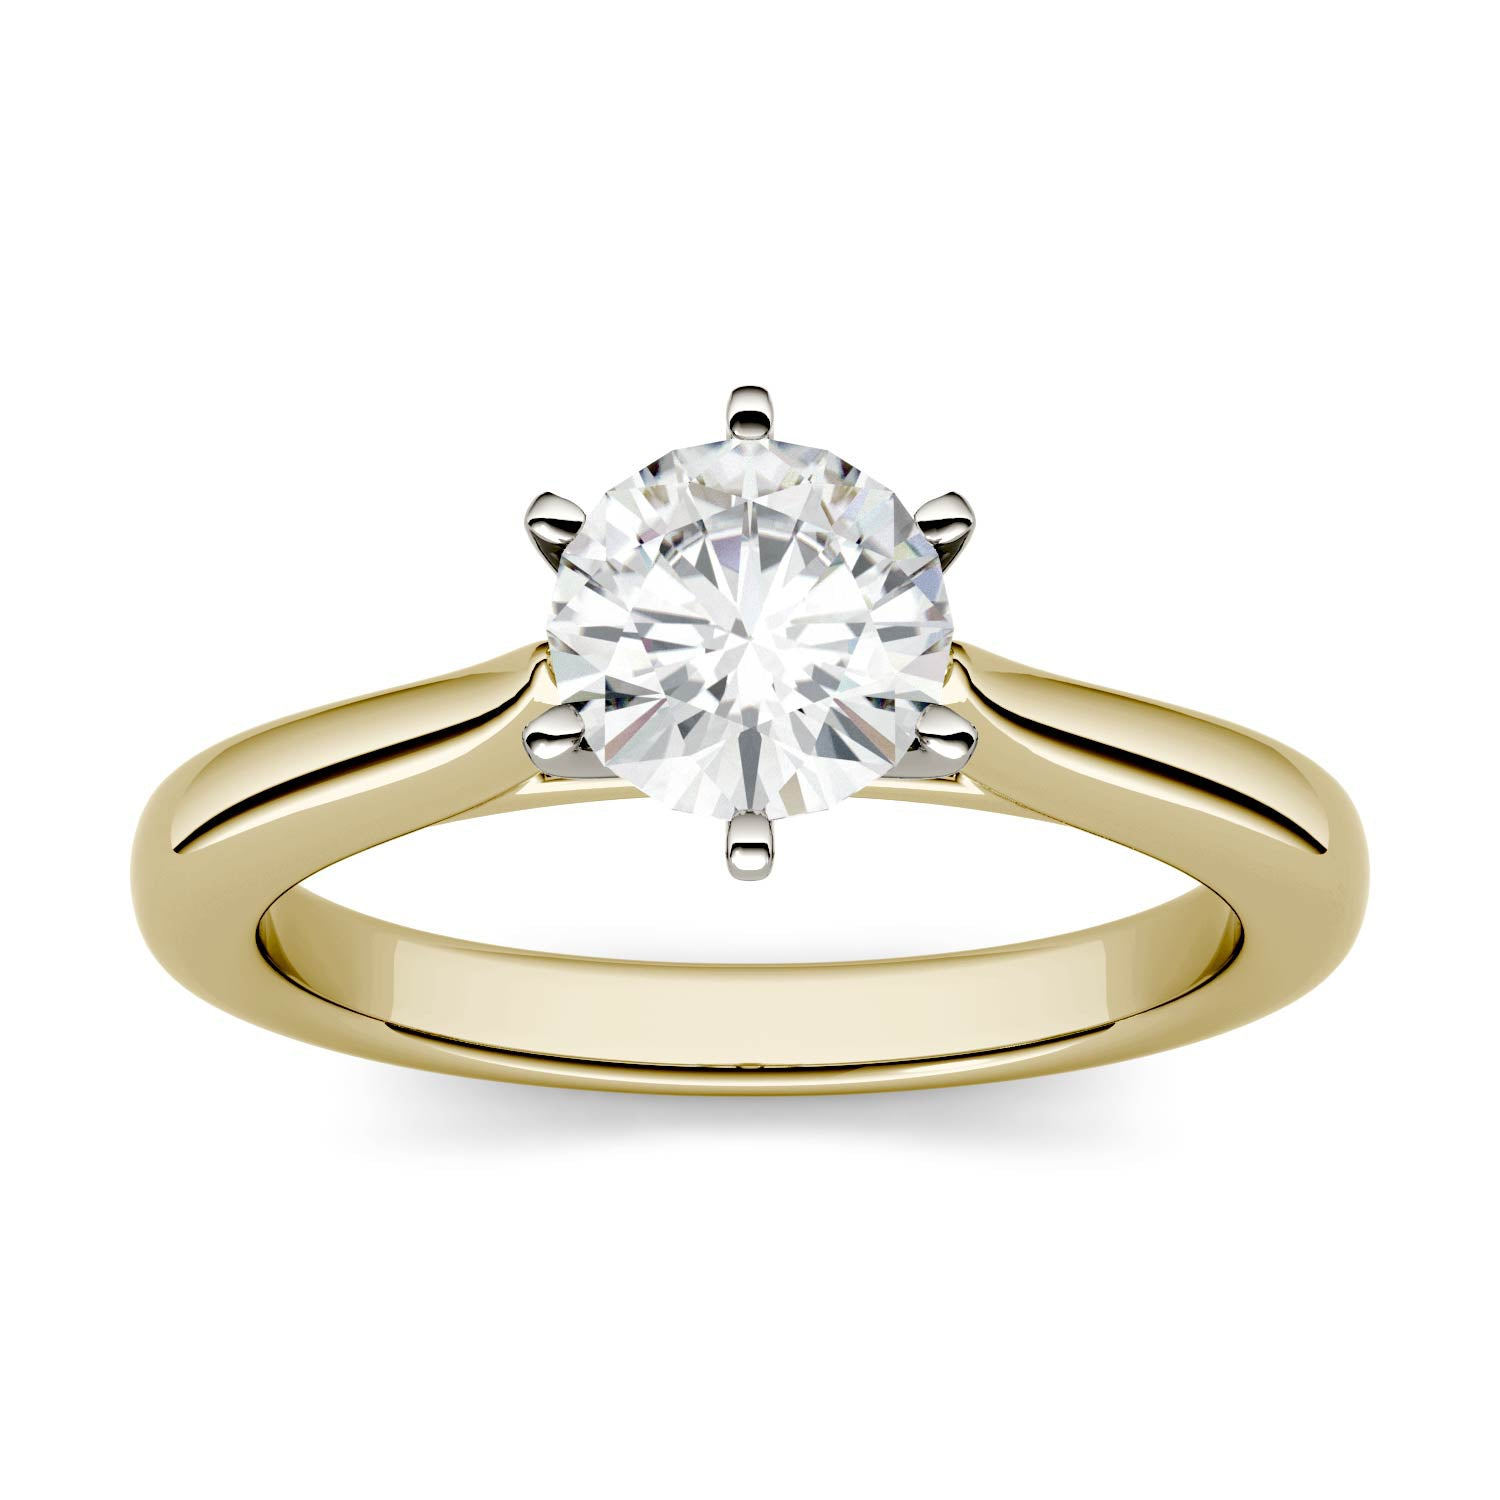 1 Carat TW Charles & Colvard Moissanite Solitaire Engagement Ring in Two-tone Gold-612265 - Jewelry by Johan